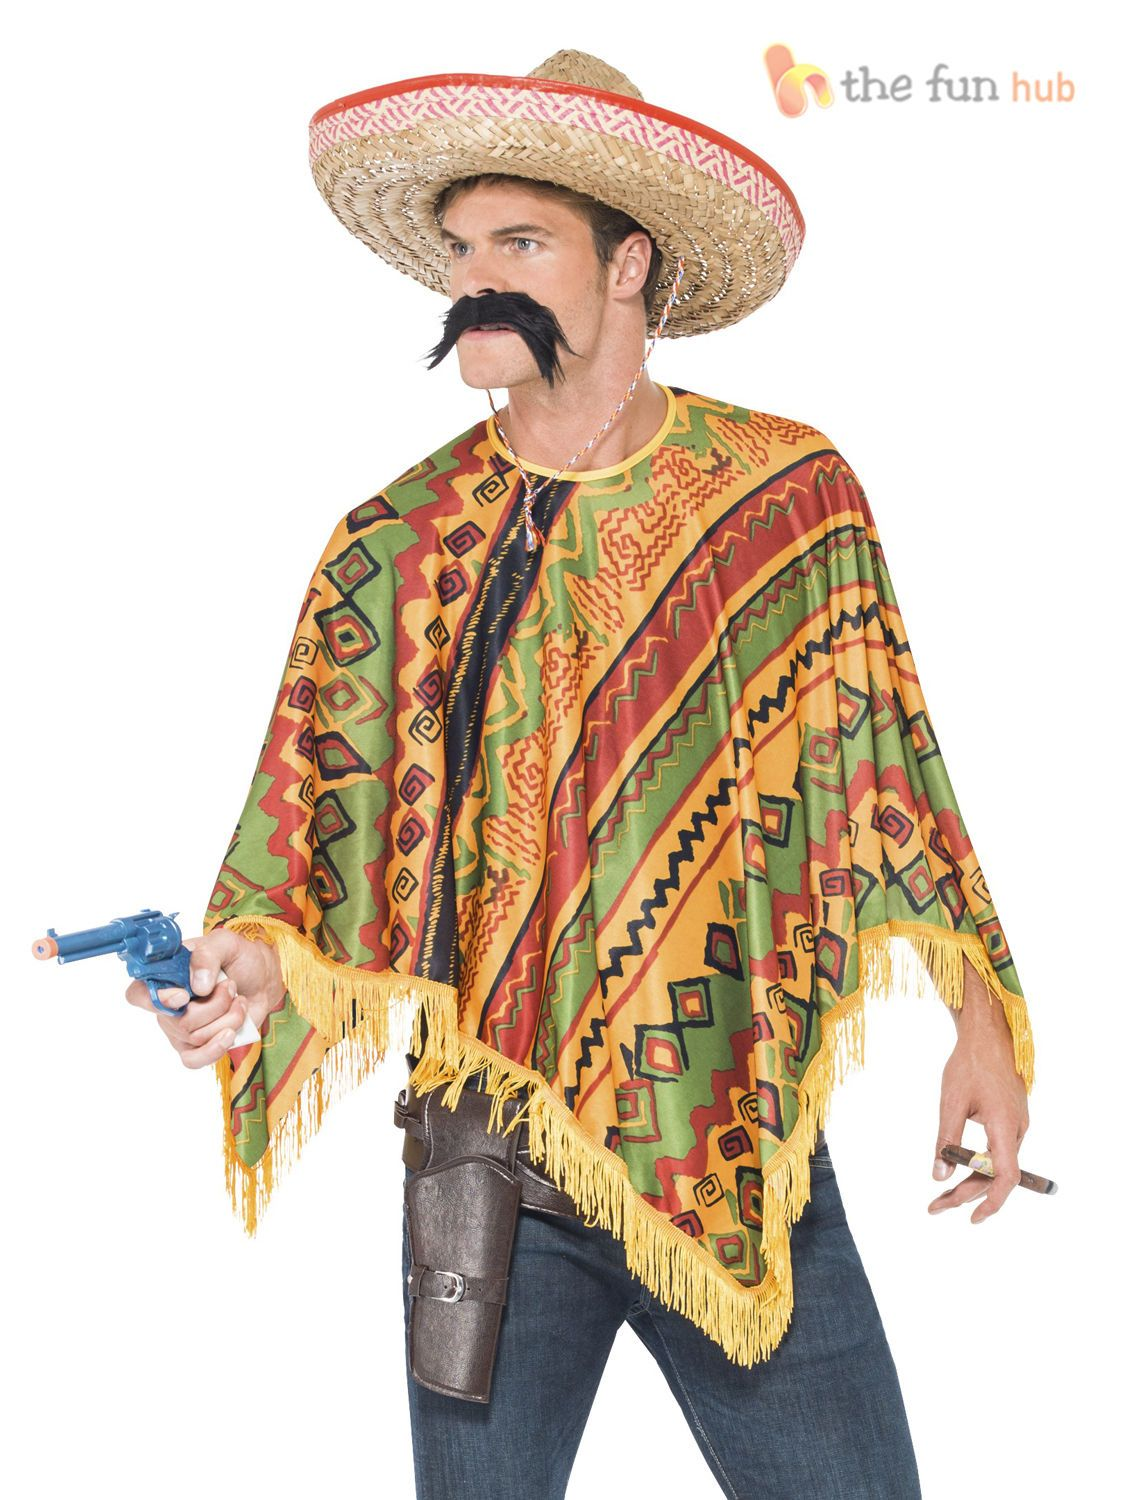 Adult Bandito poncho costume accessory